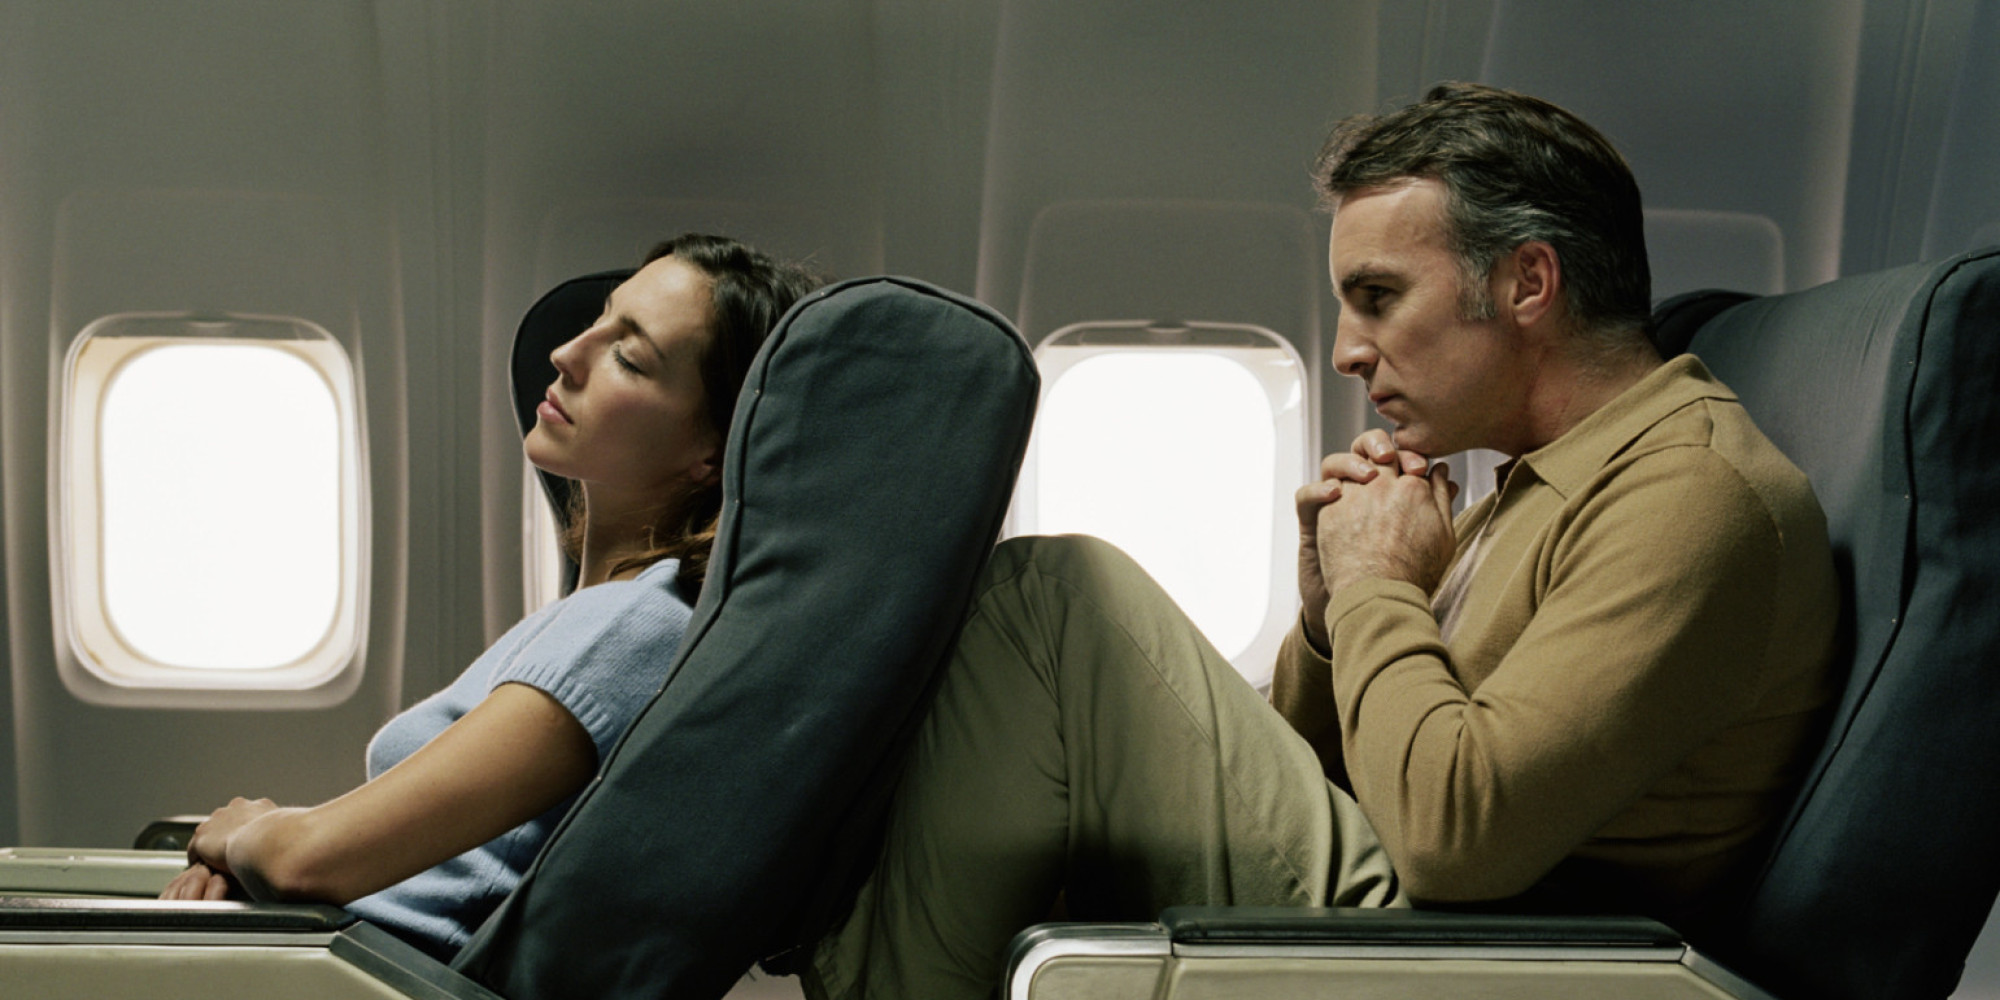 Americans Are On Team Recliner In The Airplane Seat Wars